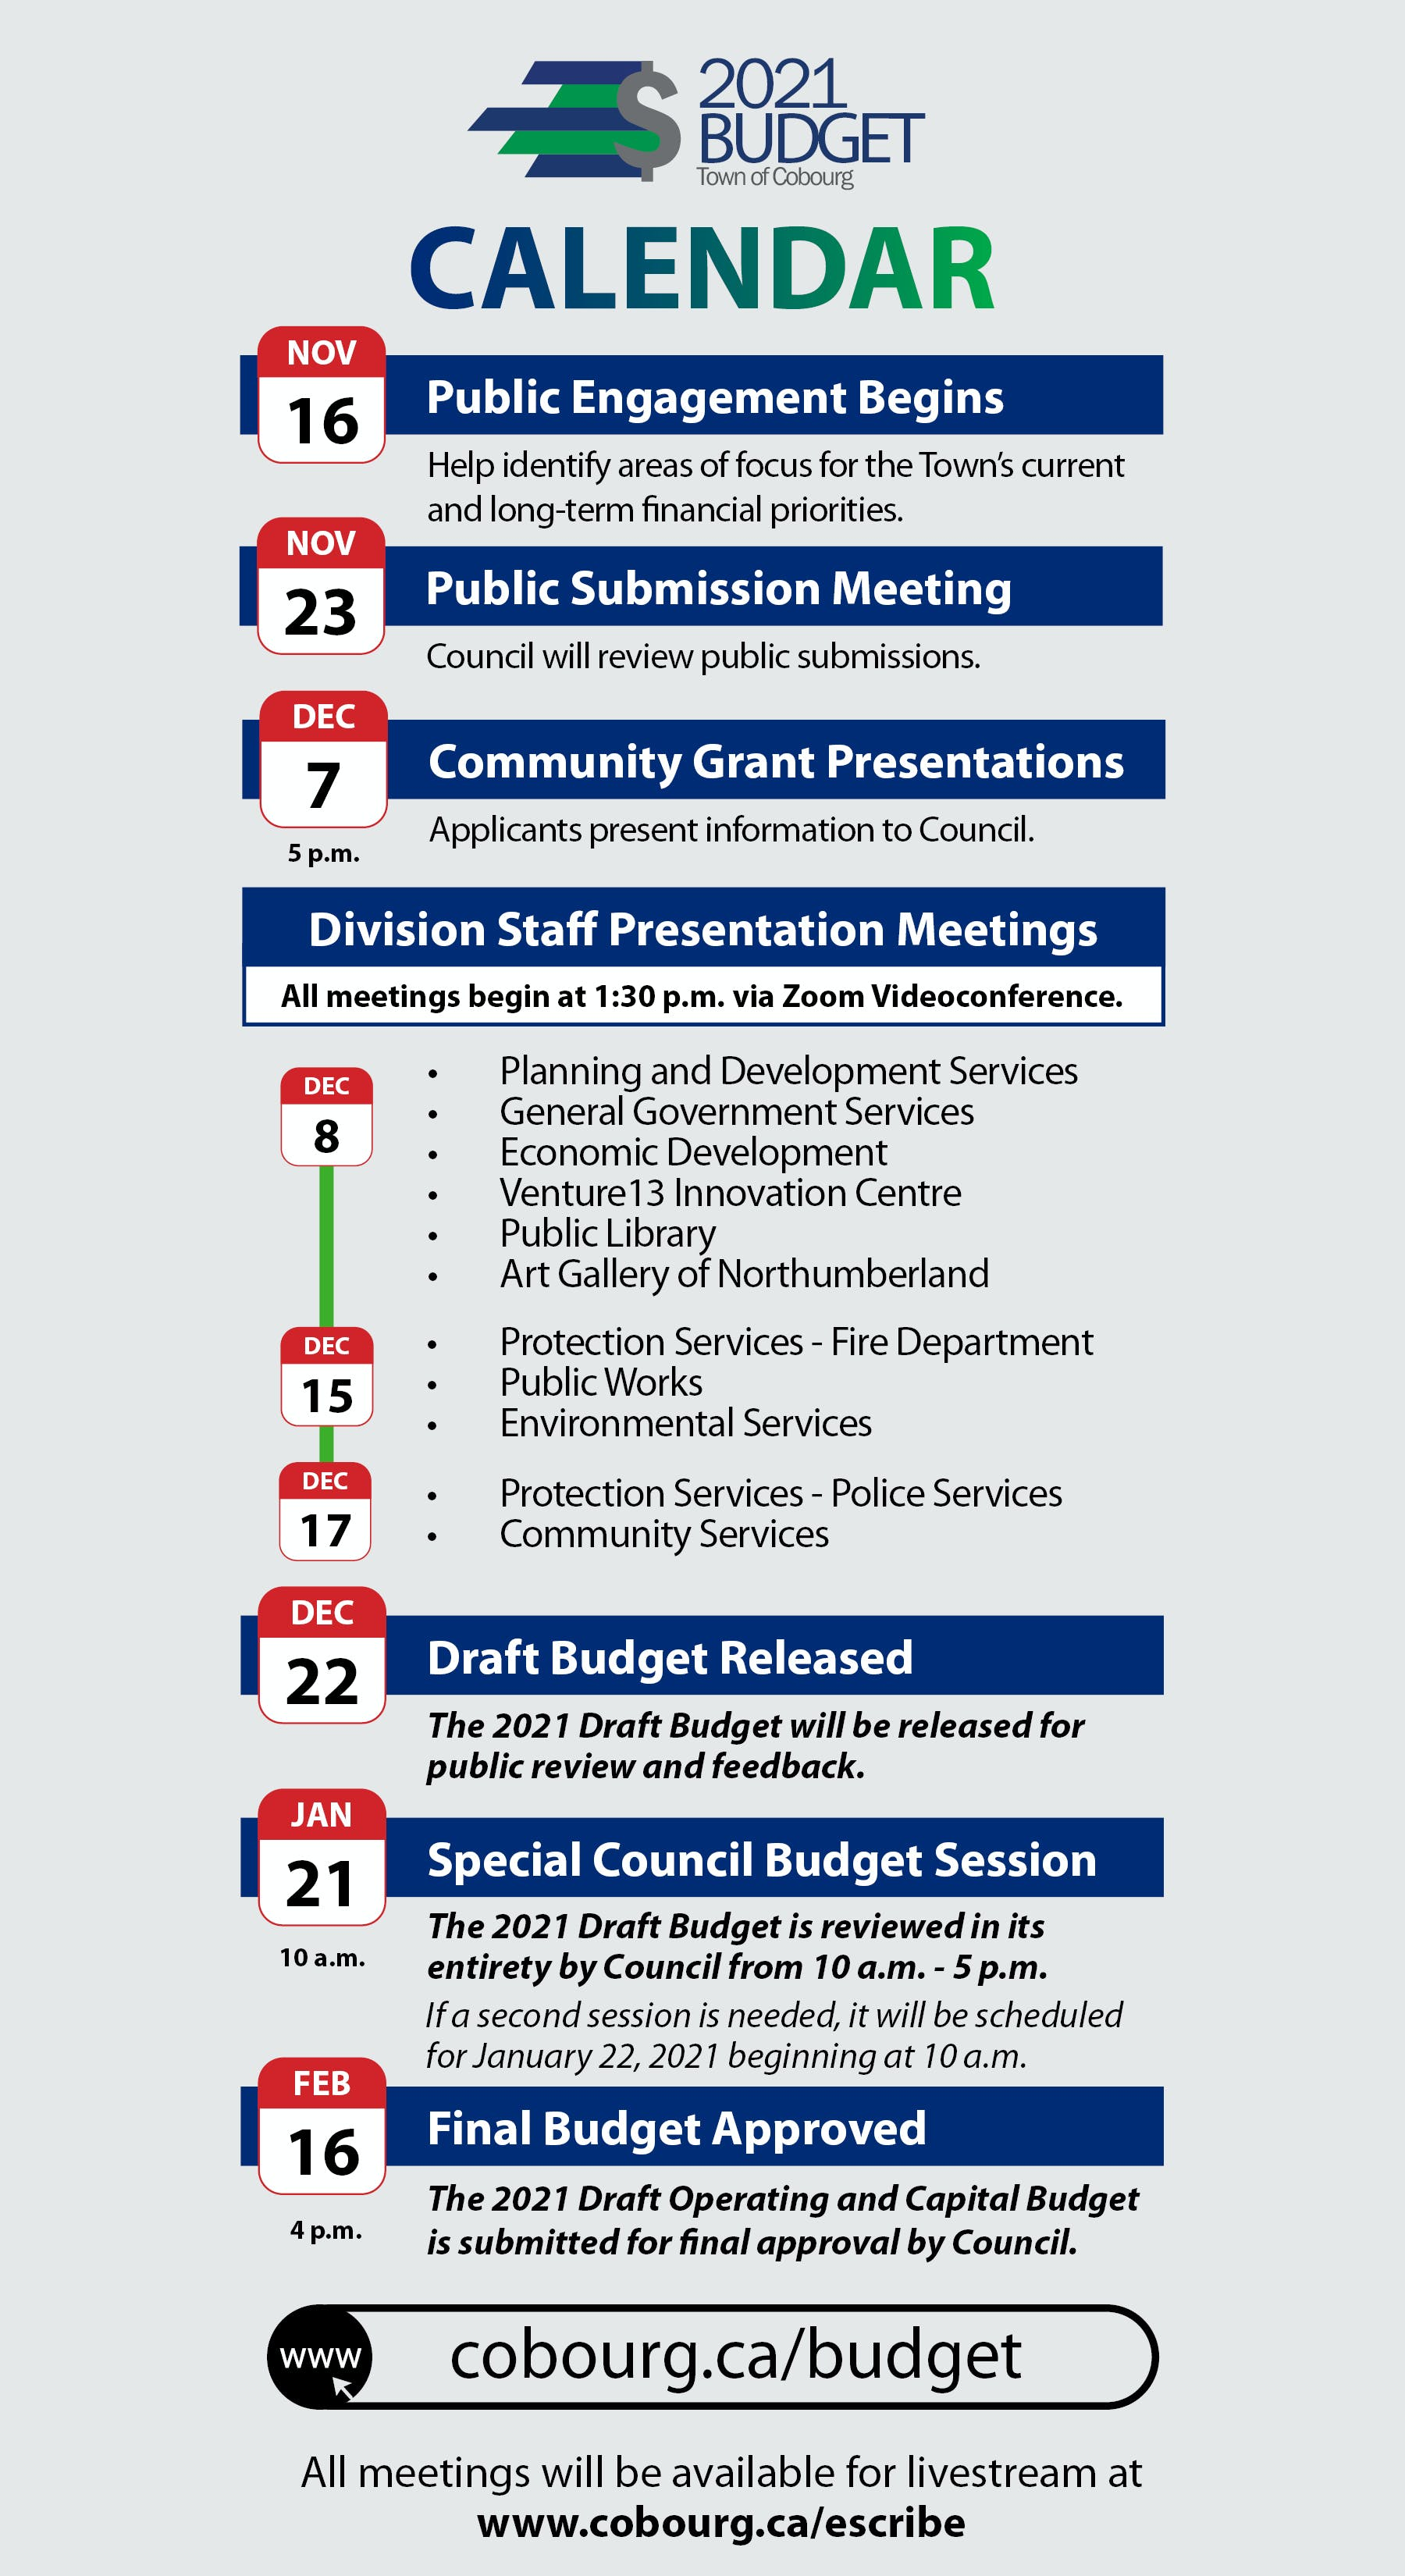 2021 Budget Calendar_Download_v2.jpg